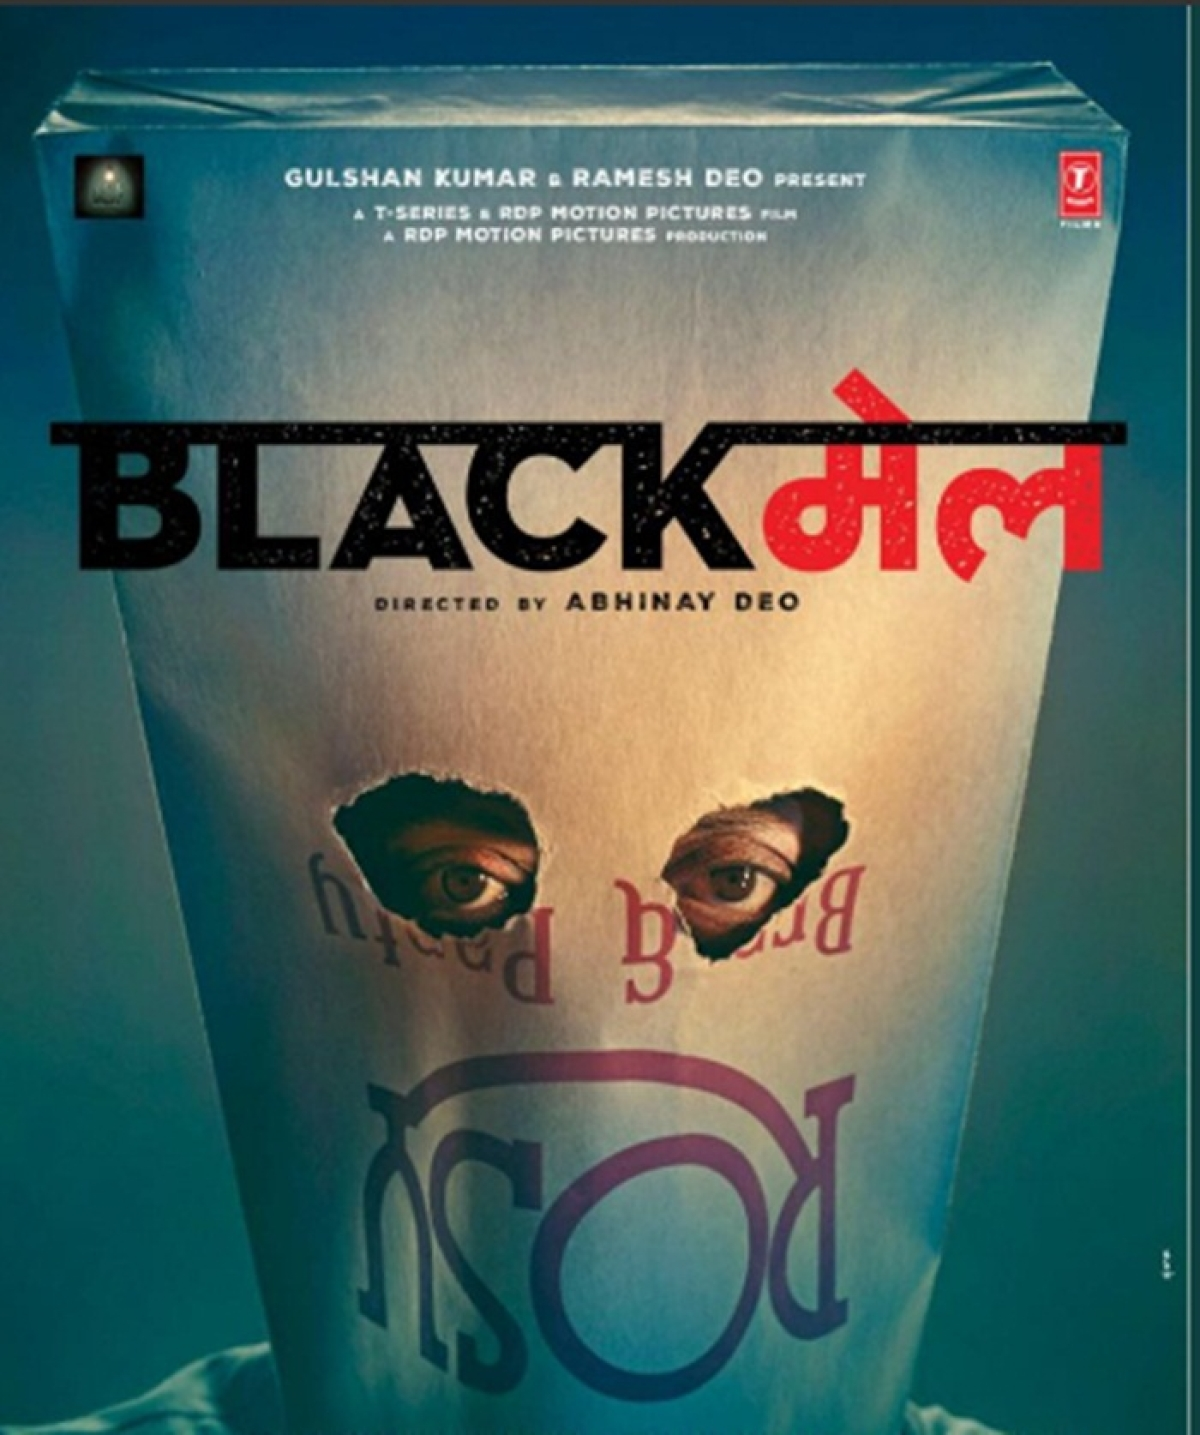 'Blackमेल' Teaser: Irrfan Khan is running for his life in boxers, covering his face with a lingerie bag